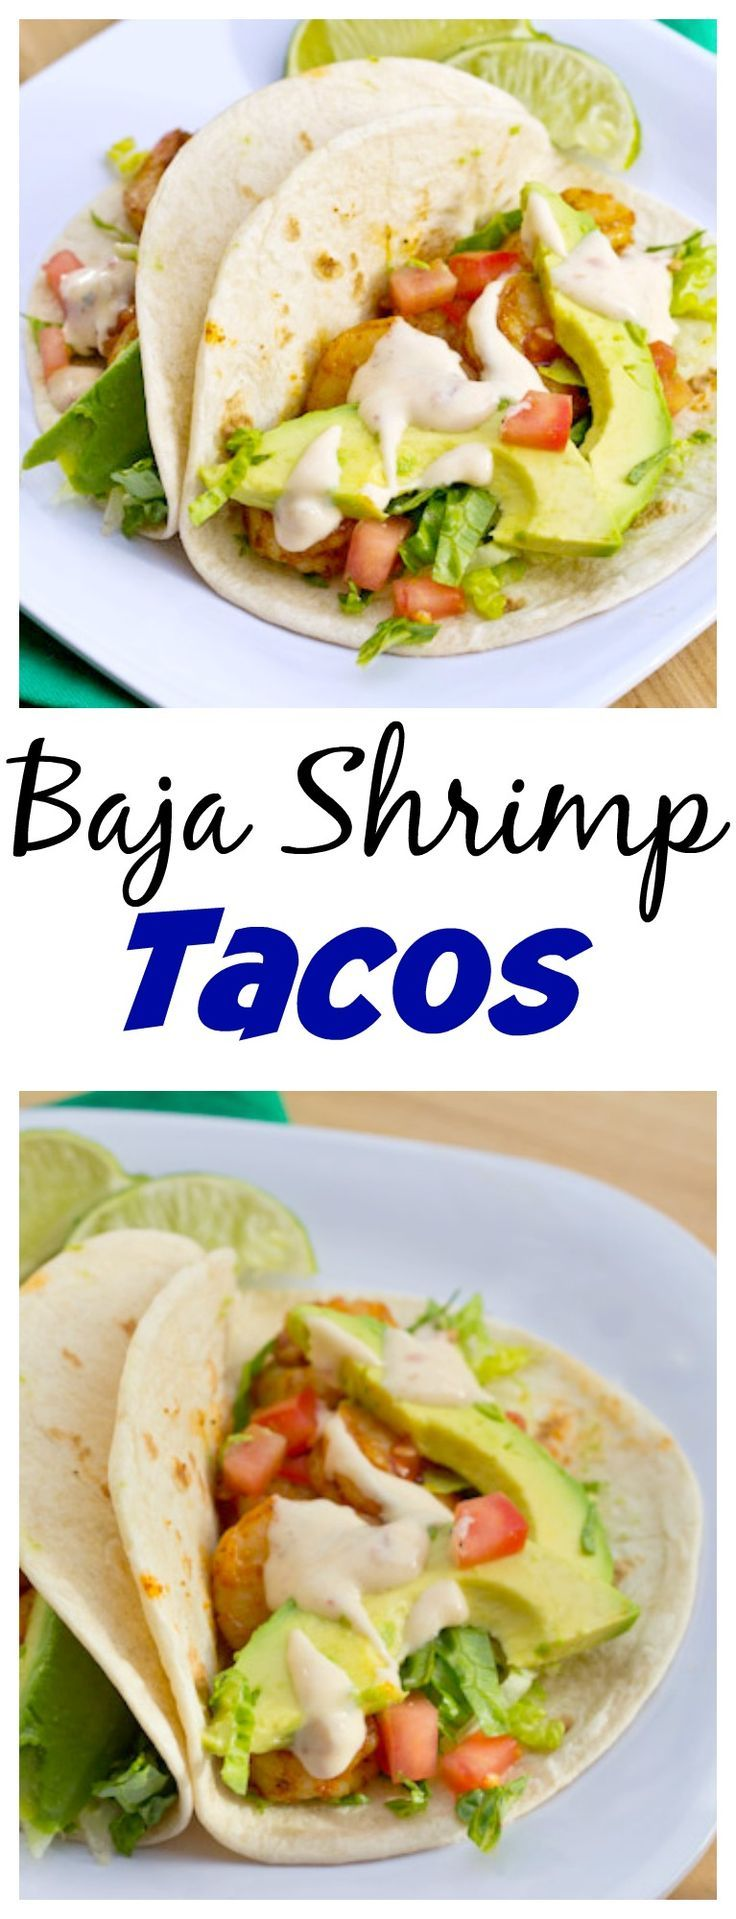 Based on Red Robin's Baja Shrimp Tacos - Slightly spicy sauteed shrimp with a lime and chipolte sauce. Mix up taco night with this recipe!